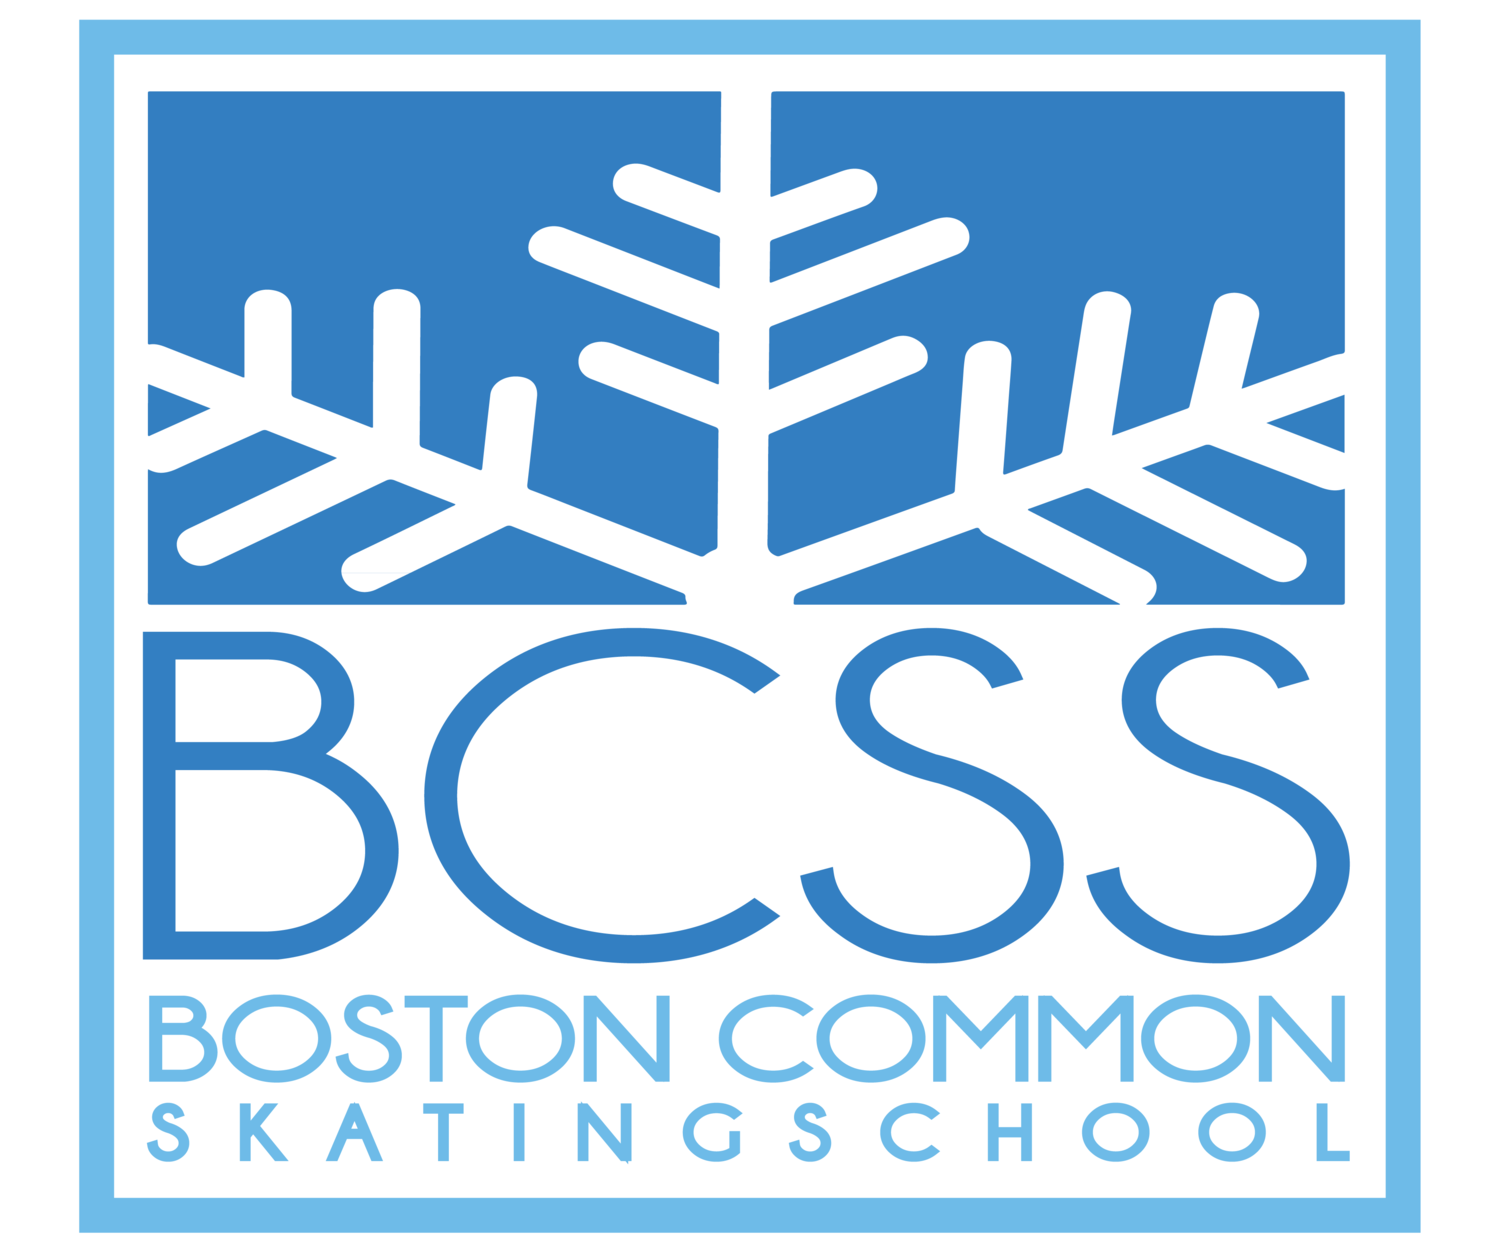 Boston Common Skating School